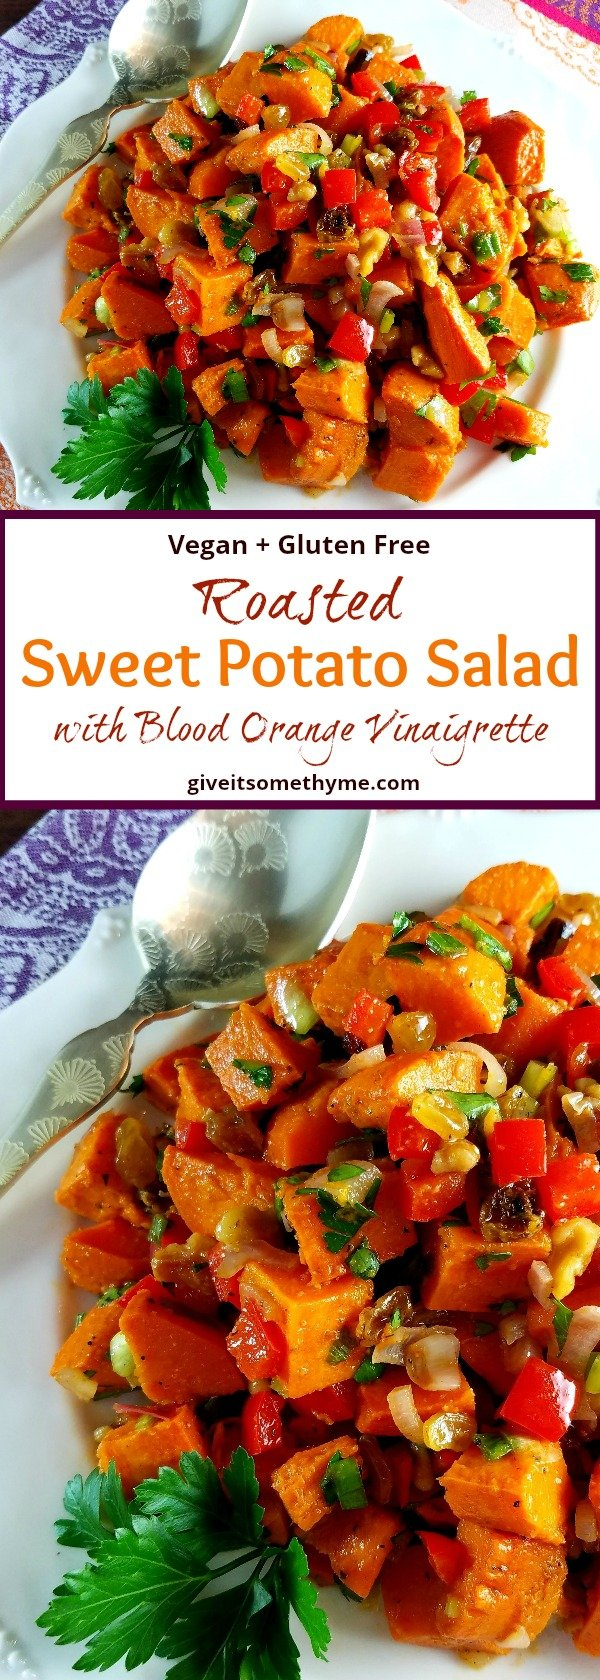 Sweet Potato Salad - Give it Some Thyme